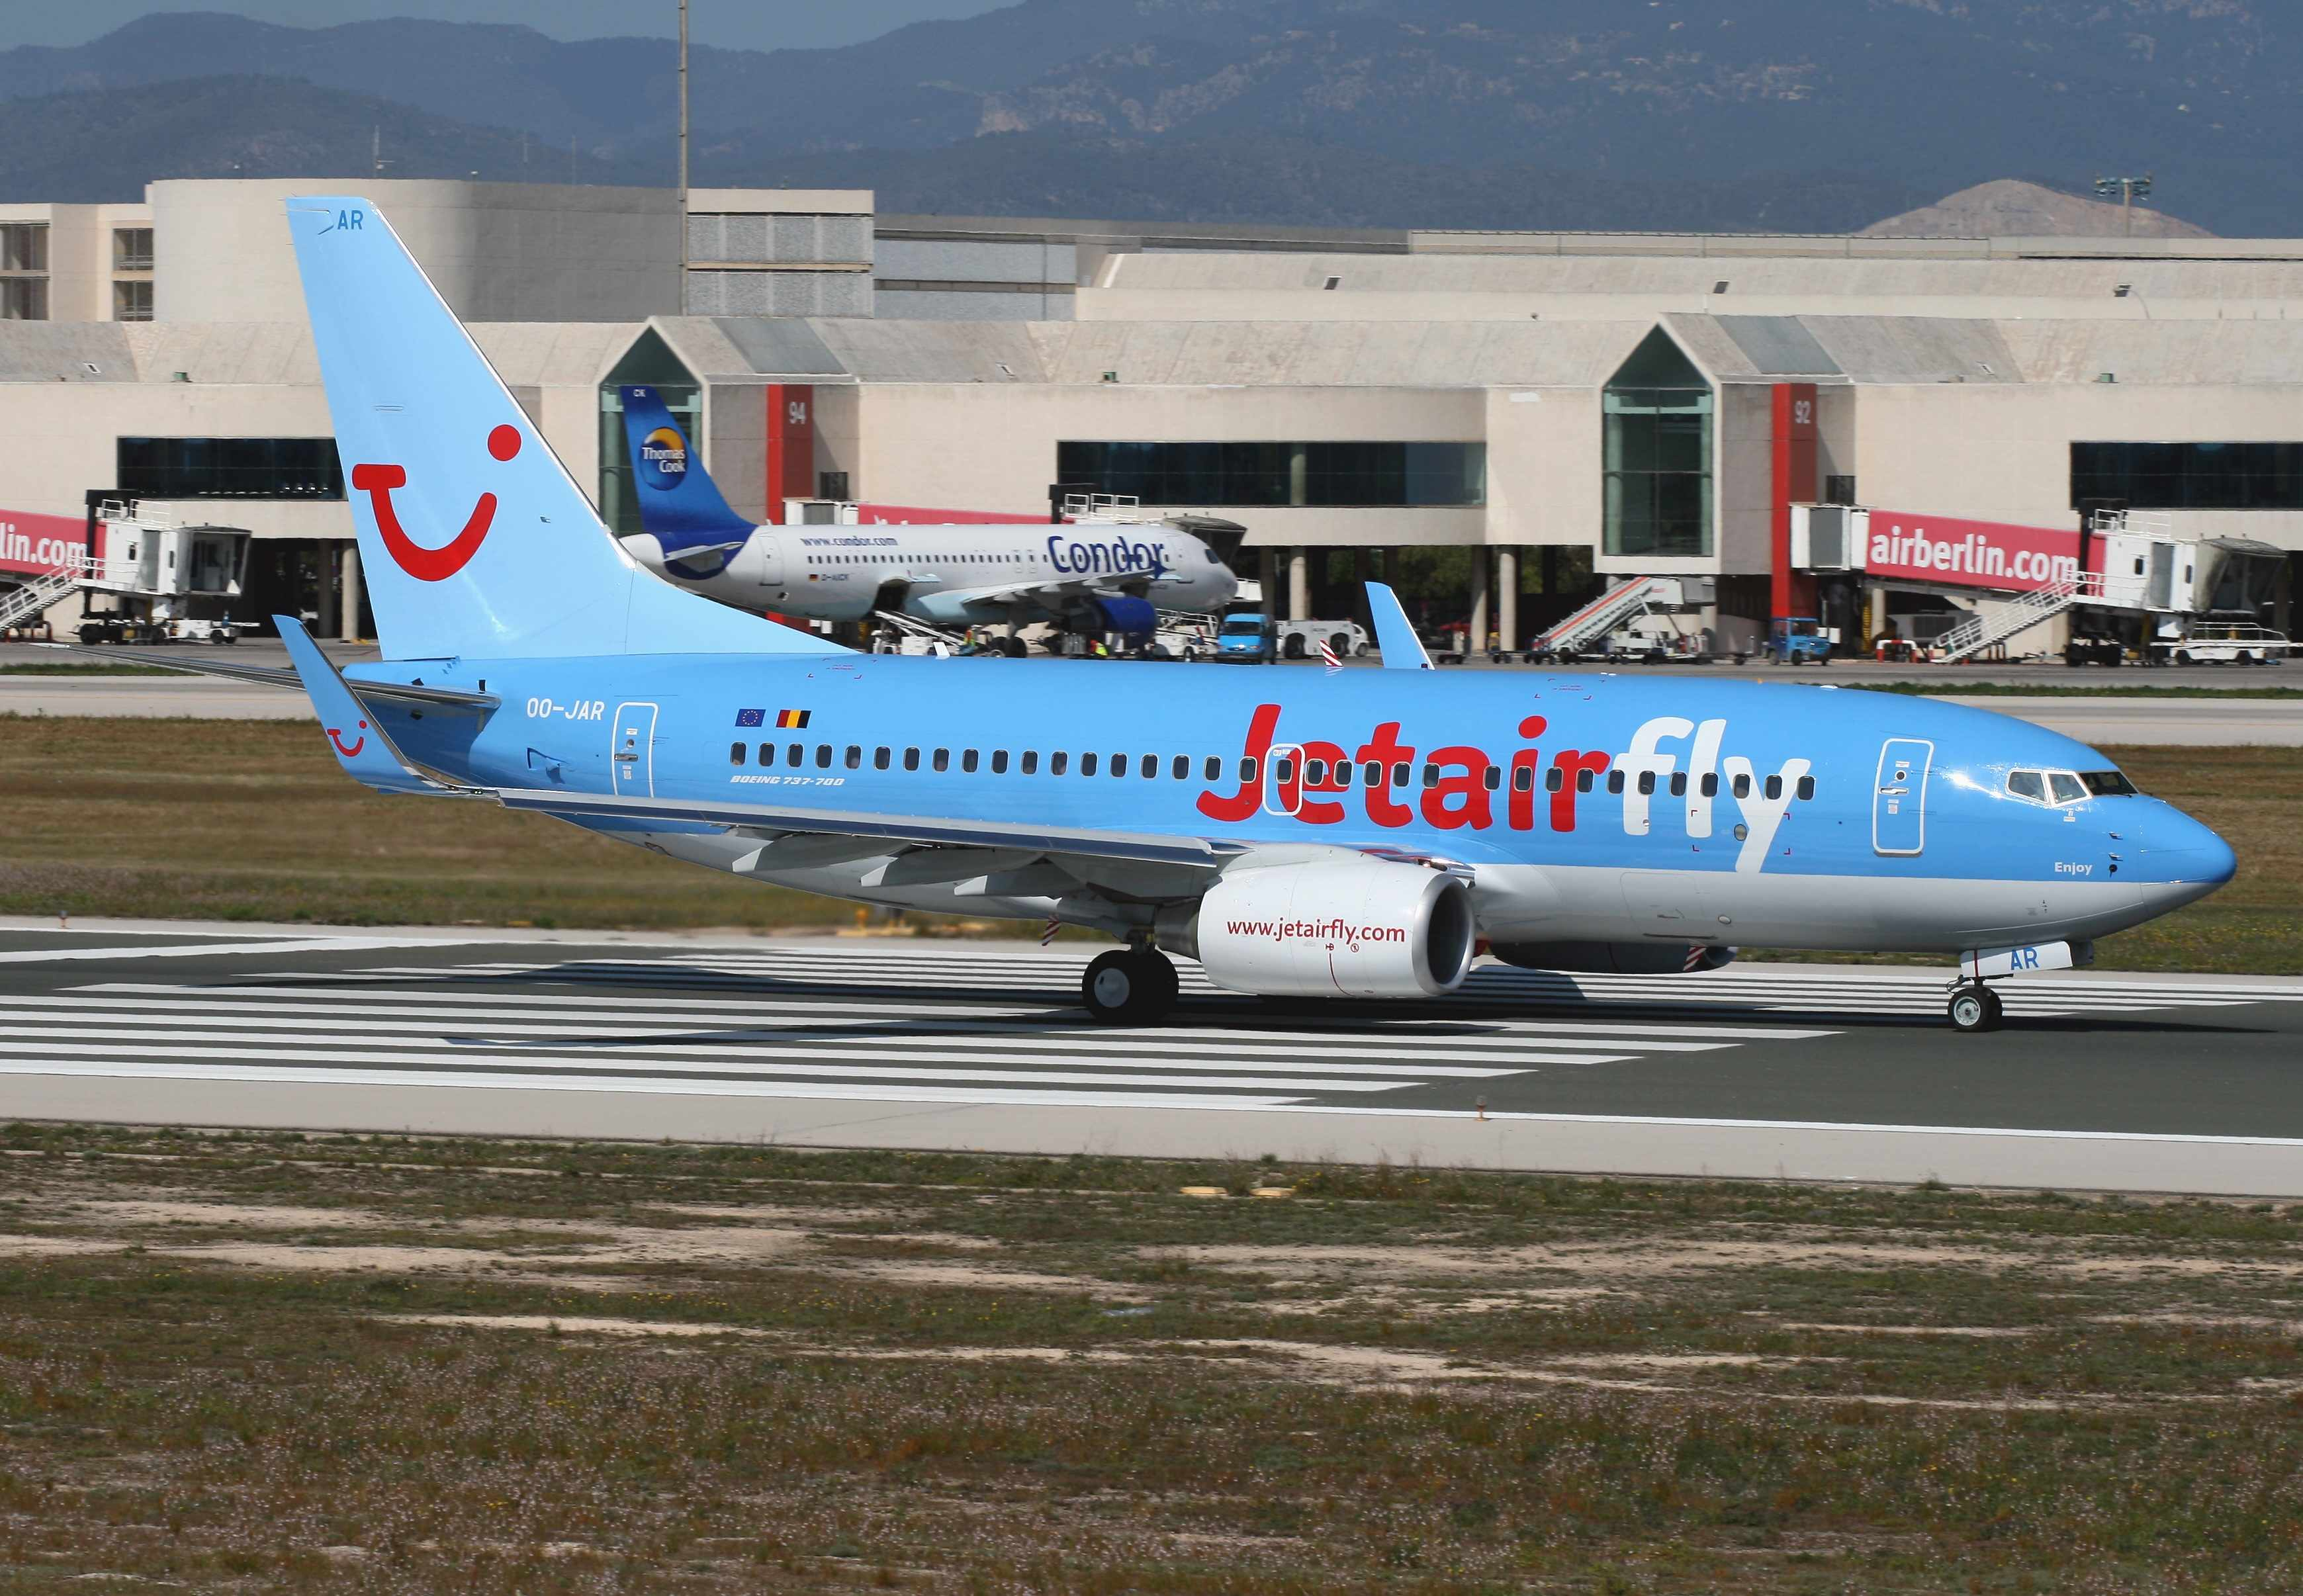 Jetairfly adds a Boeing 737-700 with winglets | World